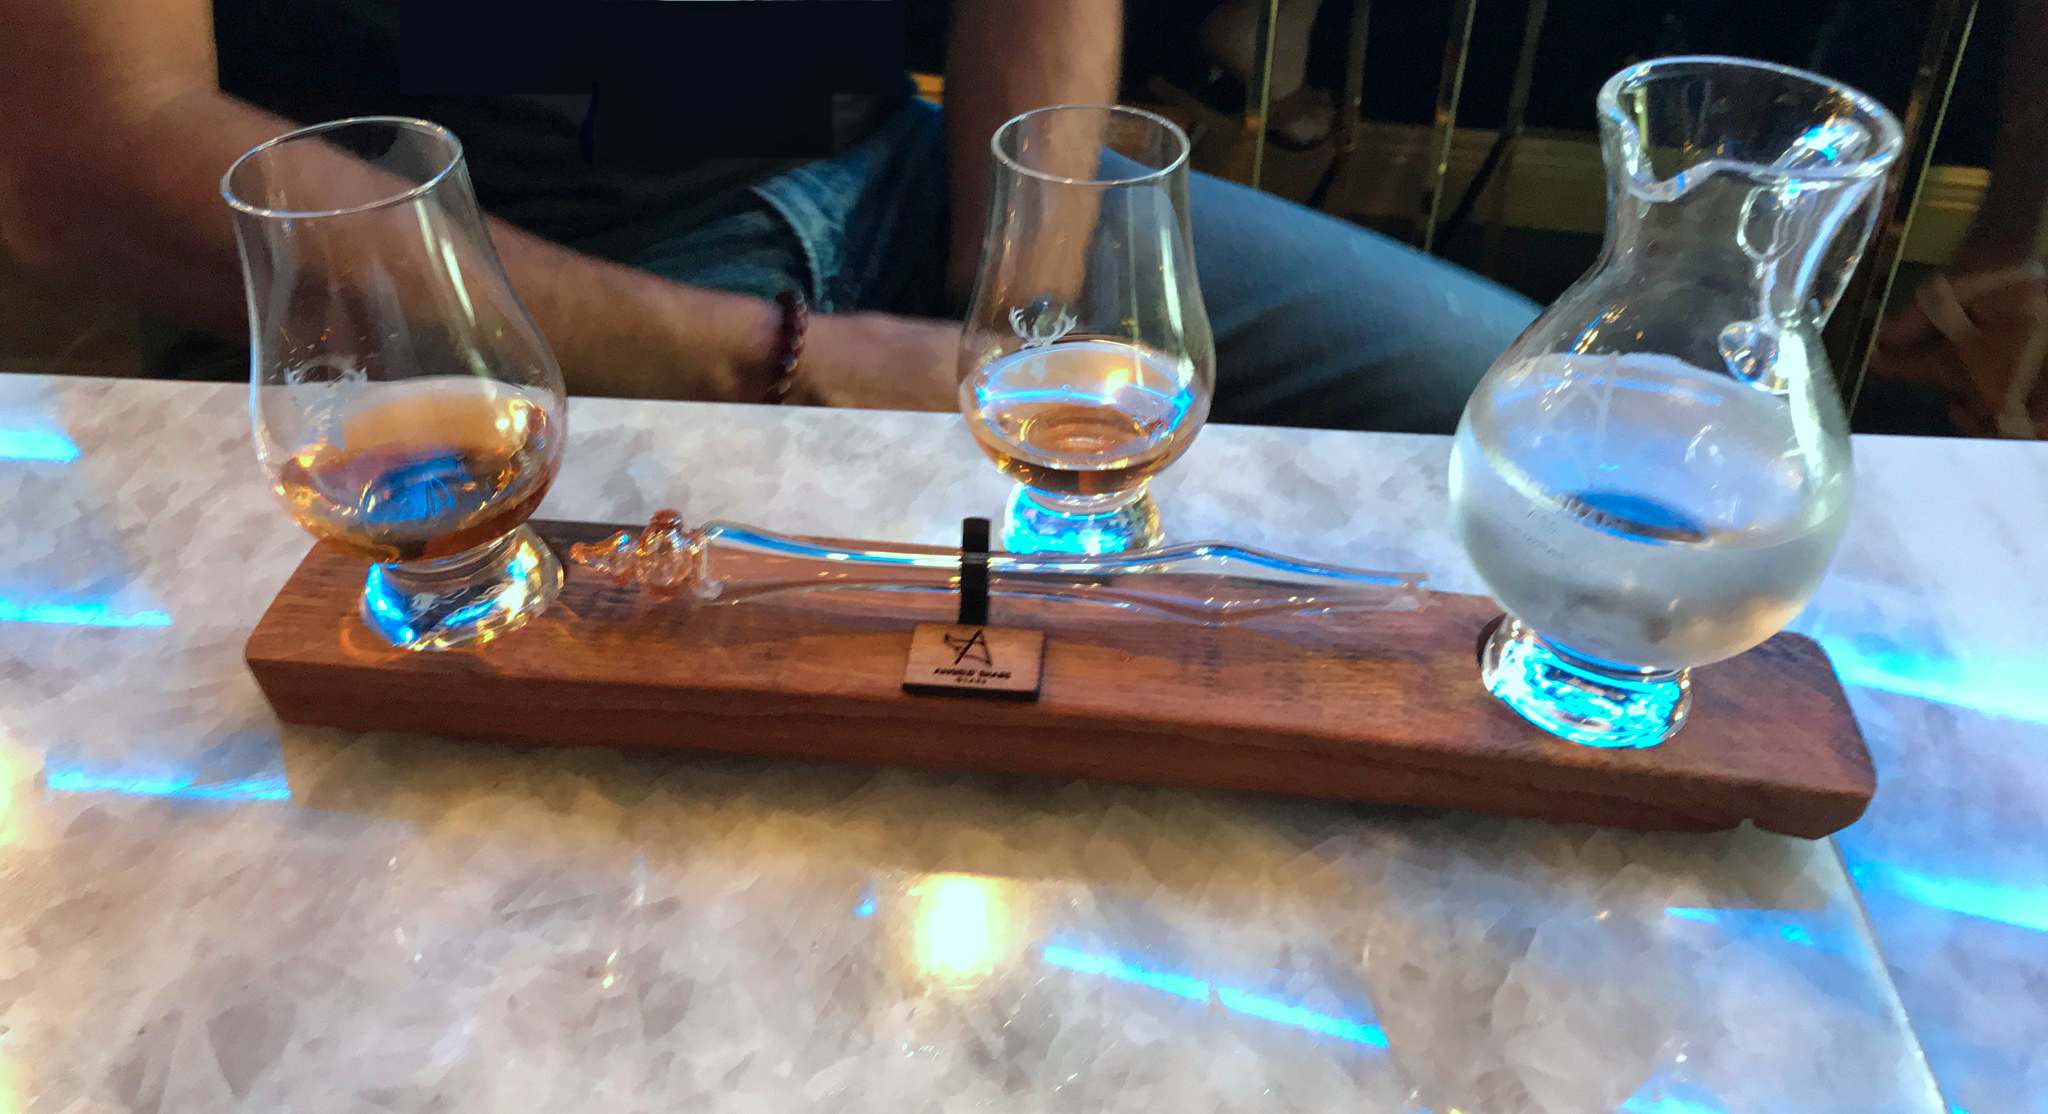 Whisky Server with two Glencairn Whisky Glasses and Water Dropper